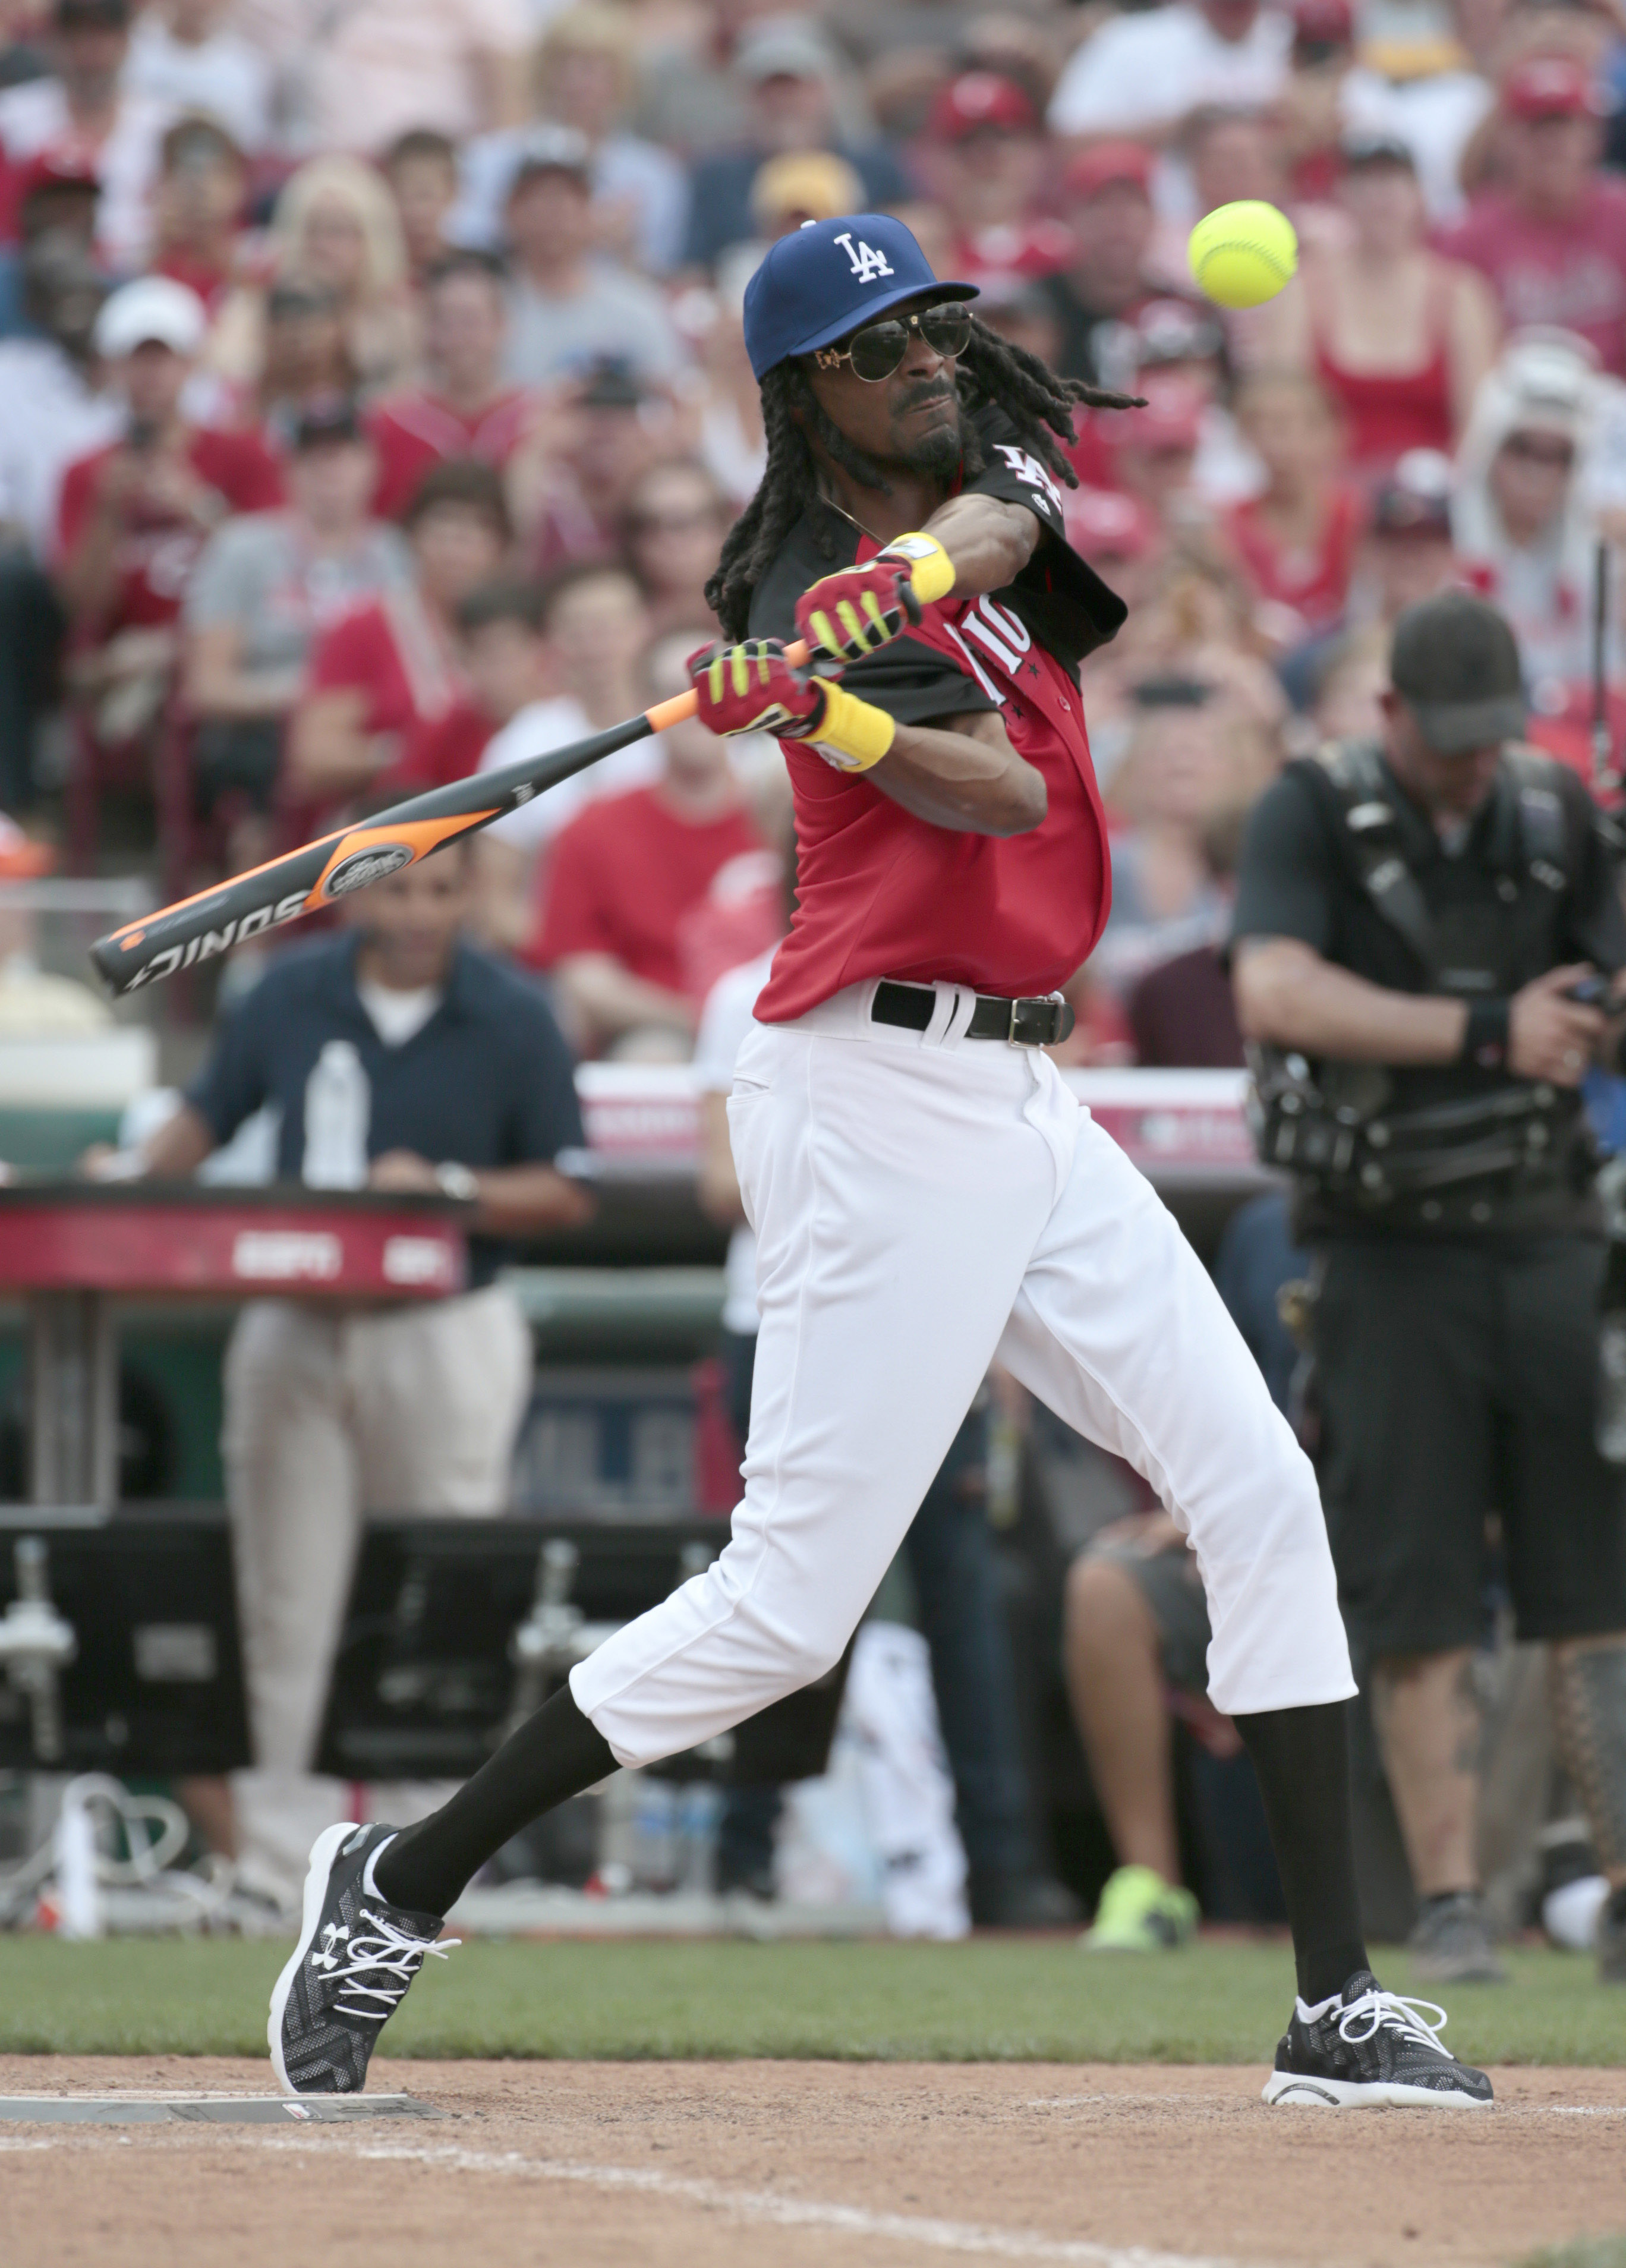 We didn't have any Virginia Softball pictures in our Getty/USA TODAY subscriptions, so here's one of Snoop Dogg playing softball.